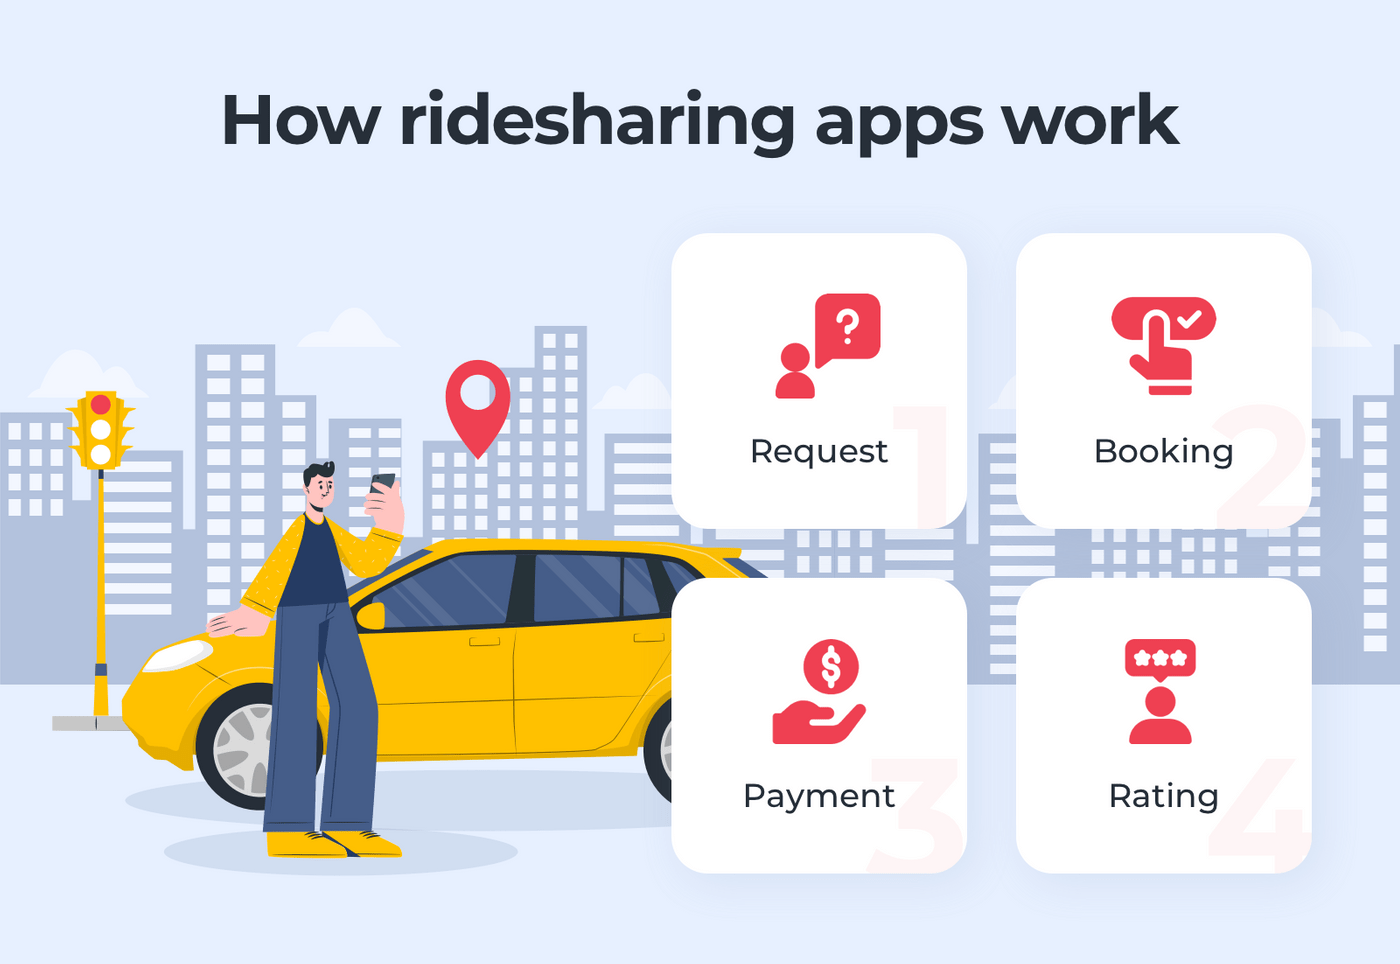 How do ridesharing apps work?